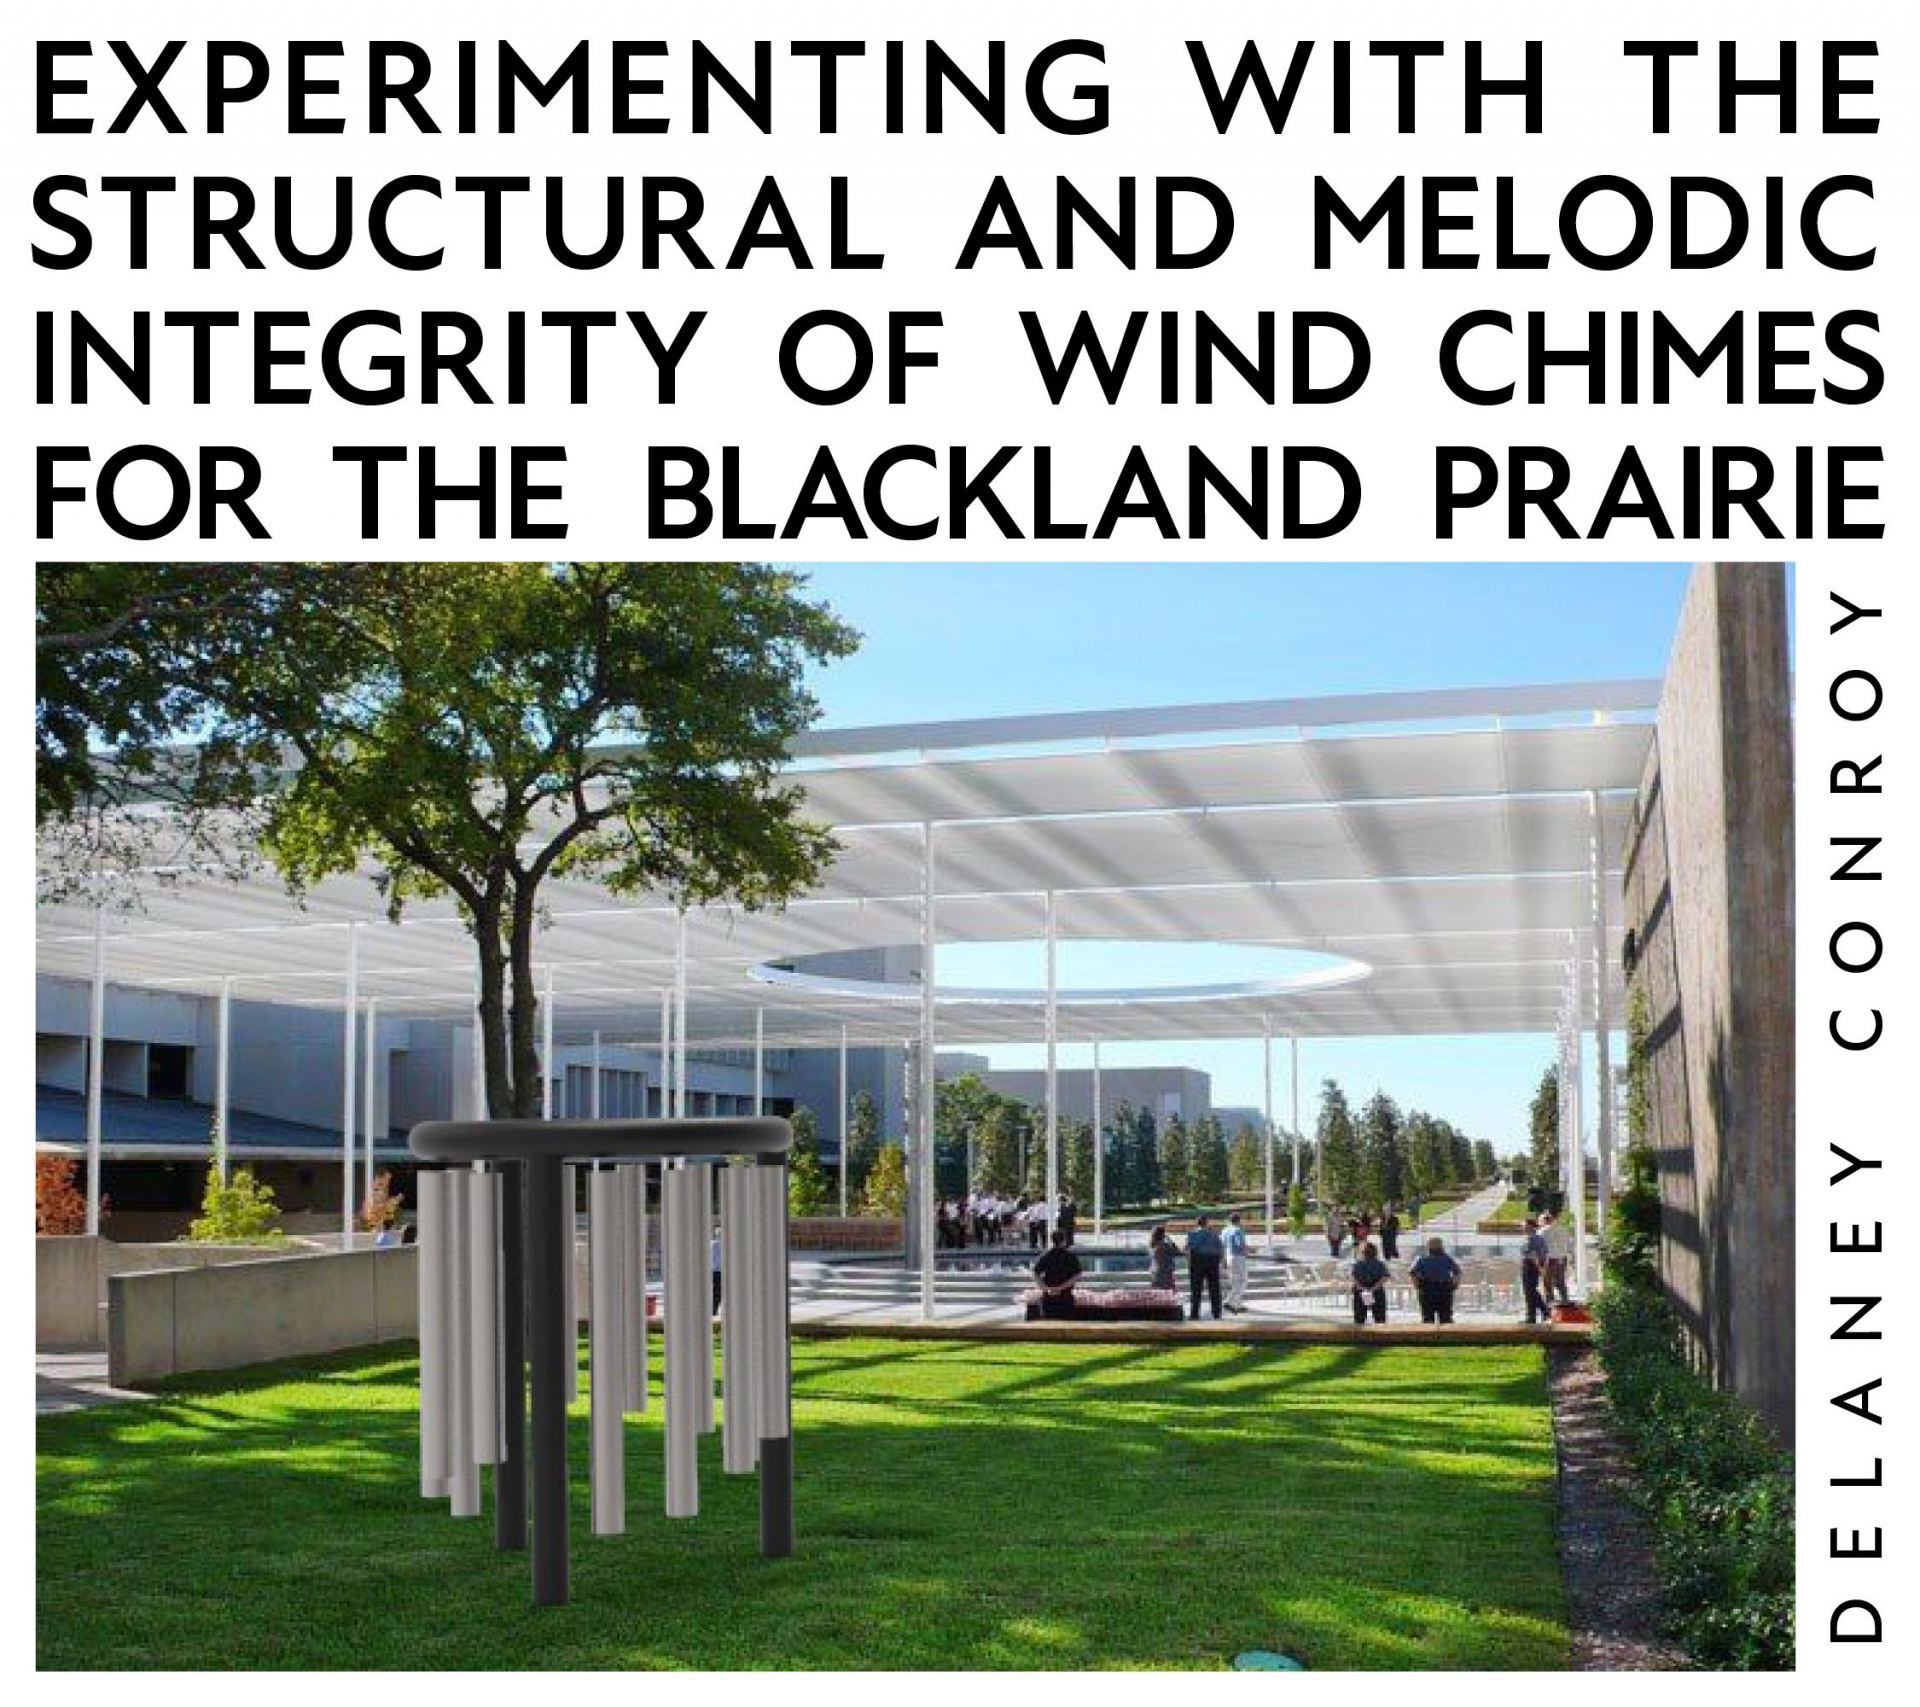 Experimenting With The Structural and Melodic Integrity of Wind Chimes For the Blackland Prairie. Delaney Conroy